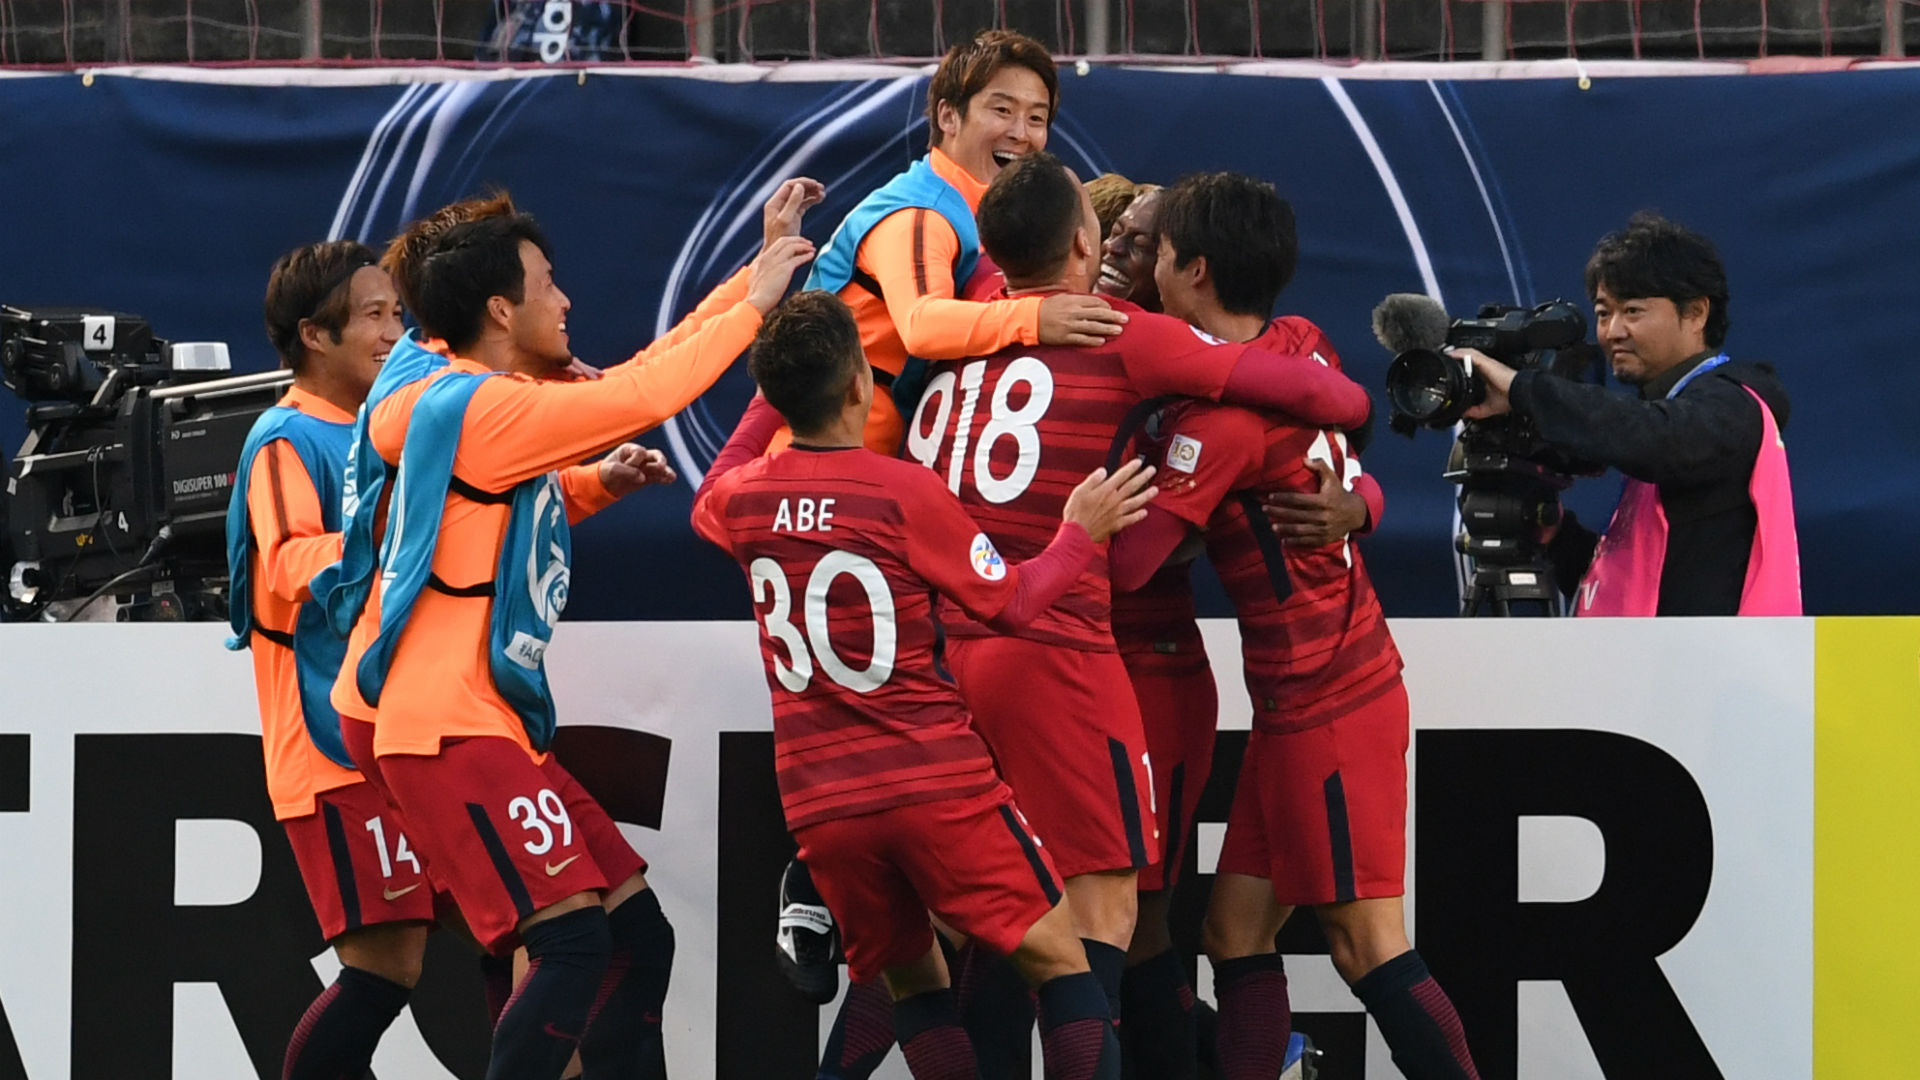 Persepolis 0 Kashima Antlers 0 (0-2 agg): Visitors dig in for Champions League triumph